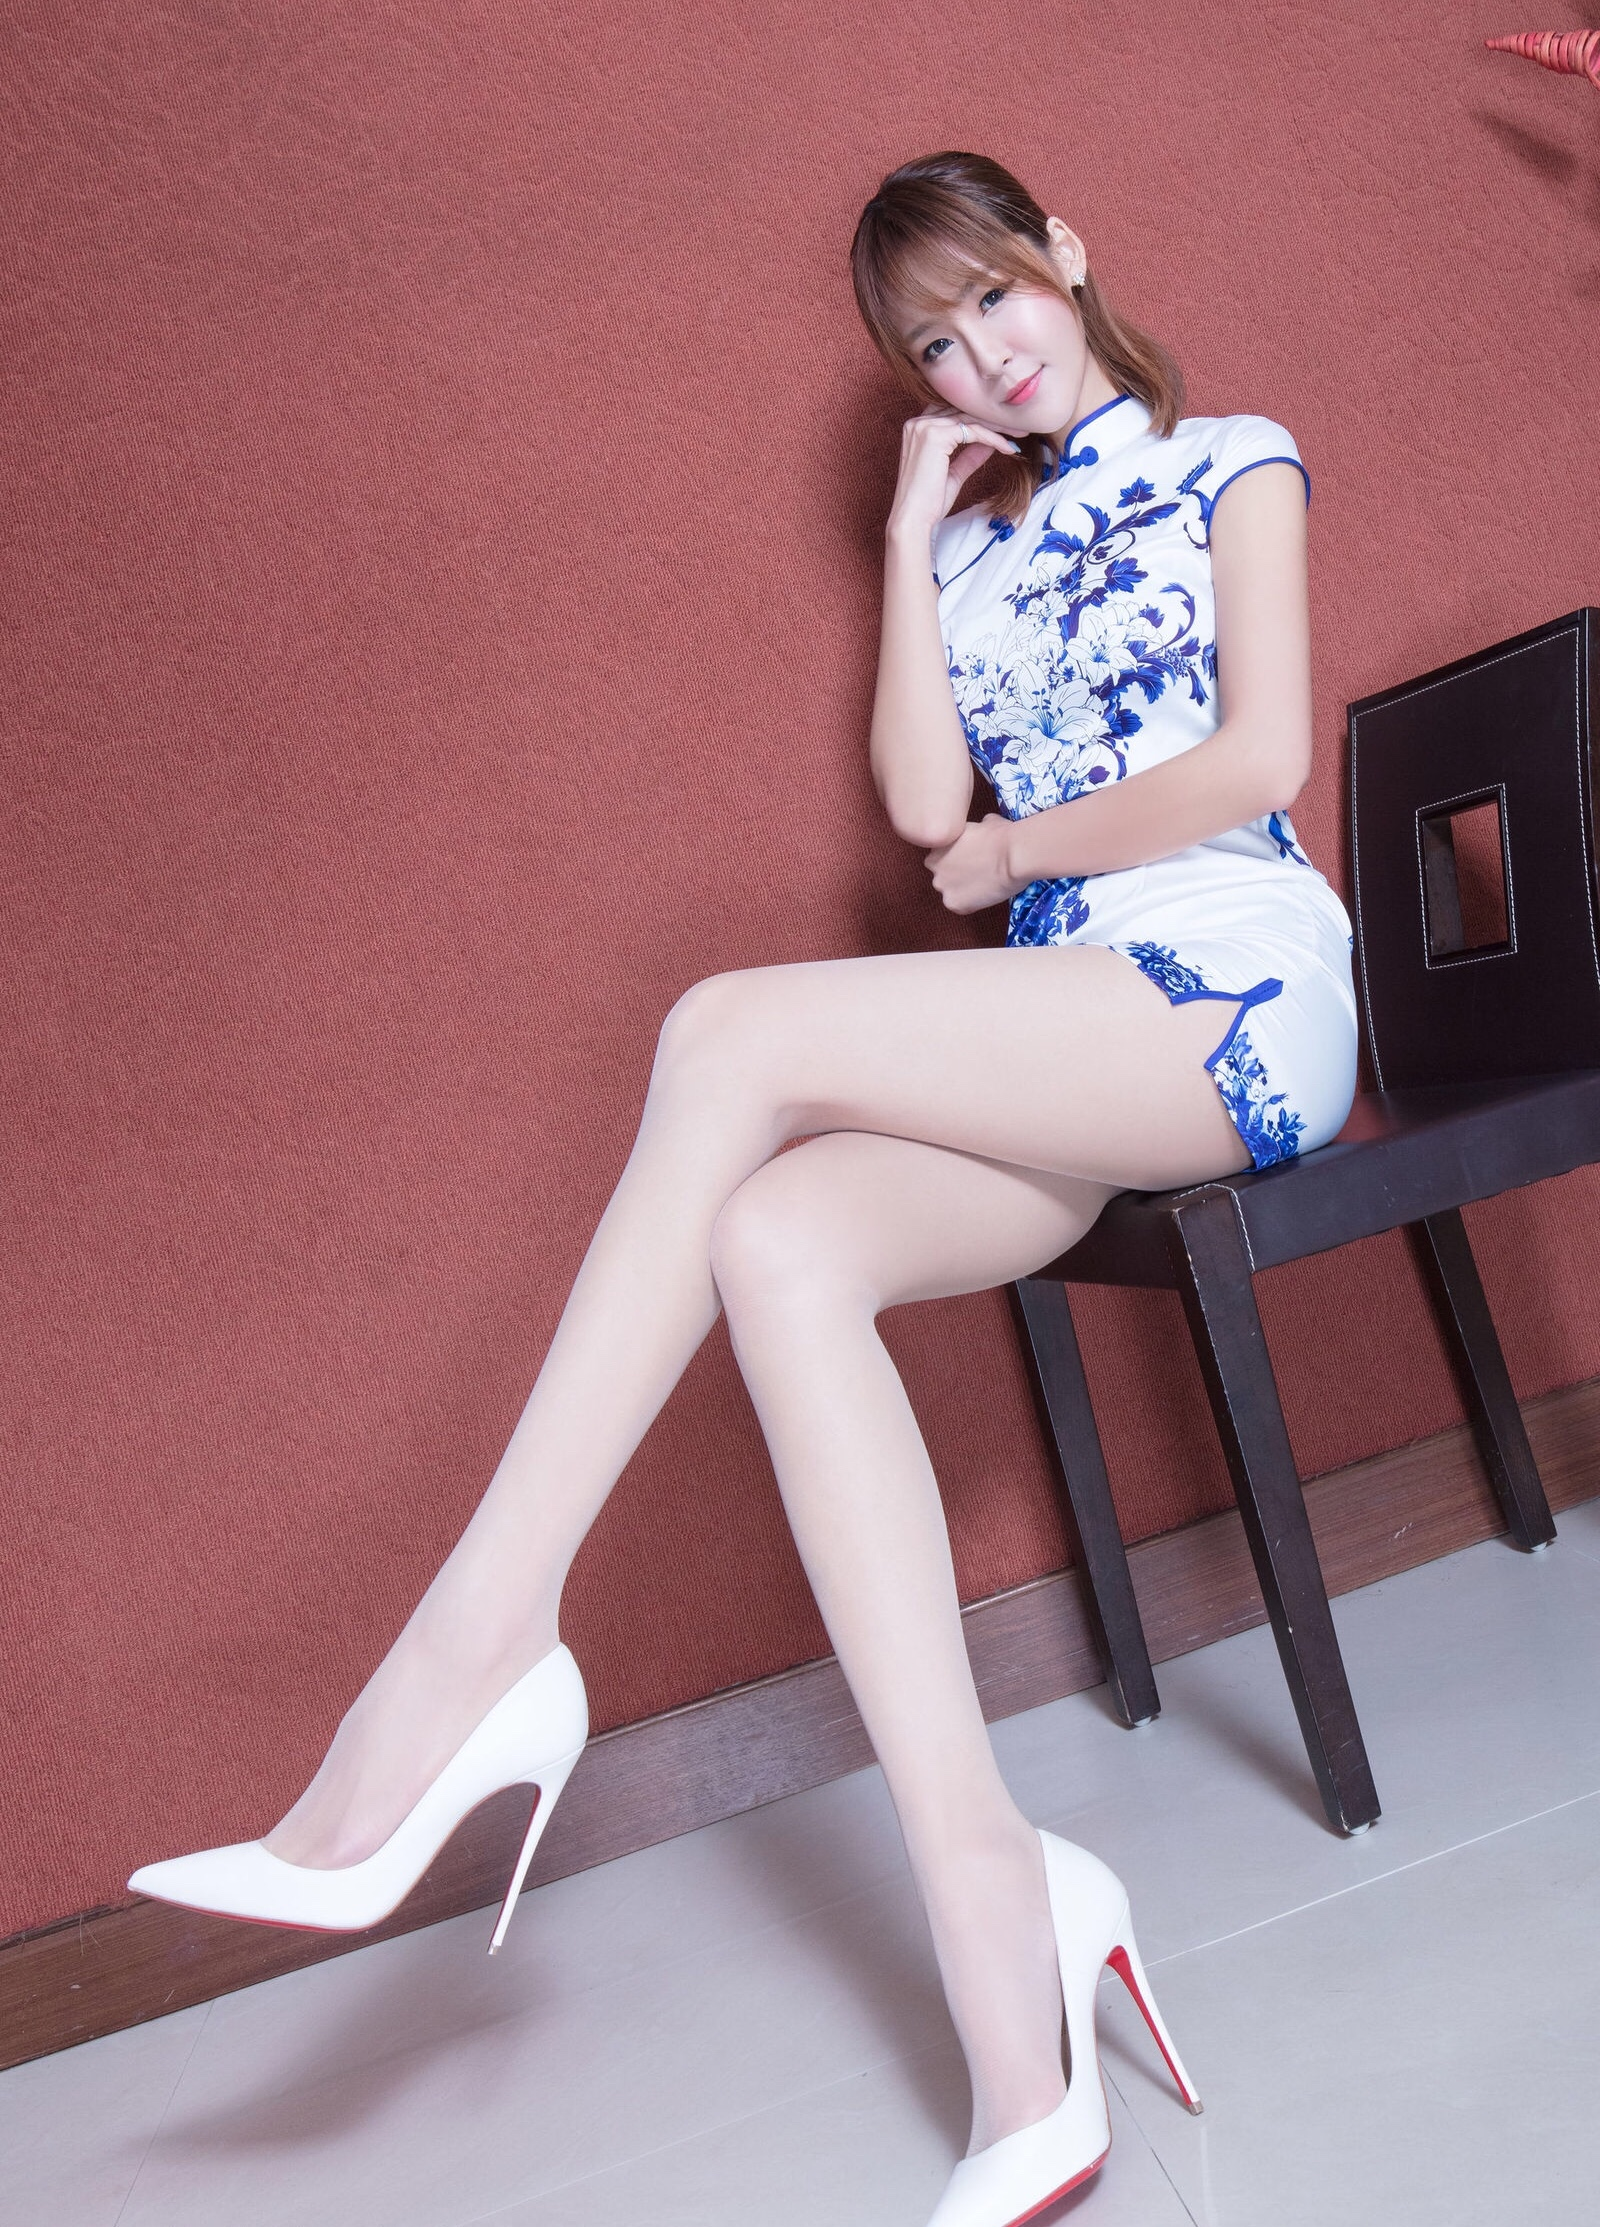 beautyleg model winnie(青花旗袍肉丝) 15